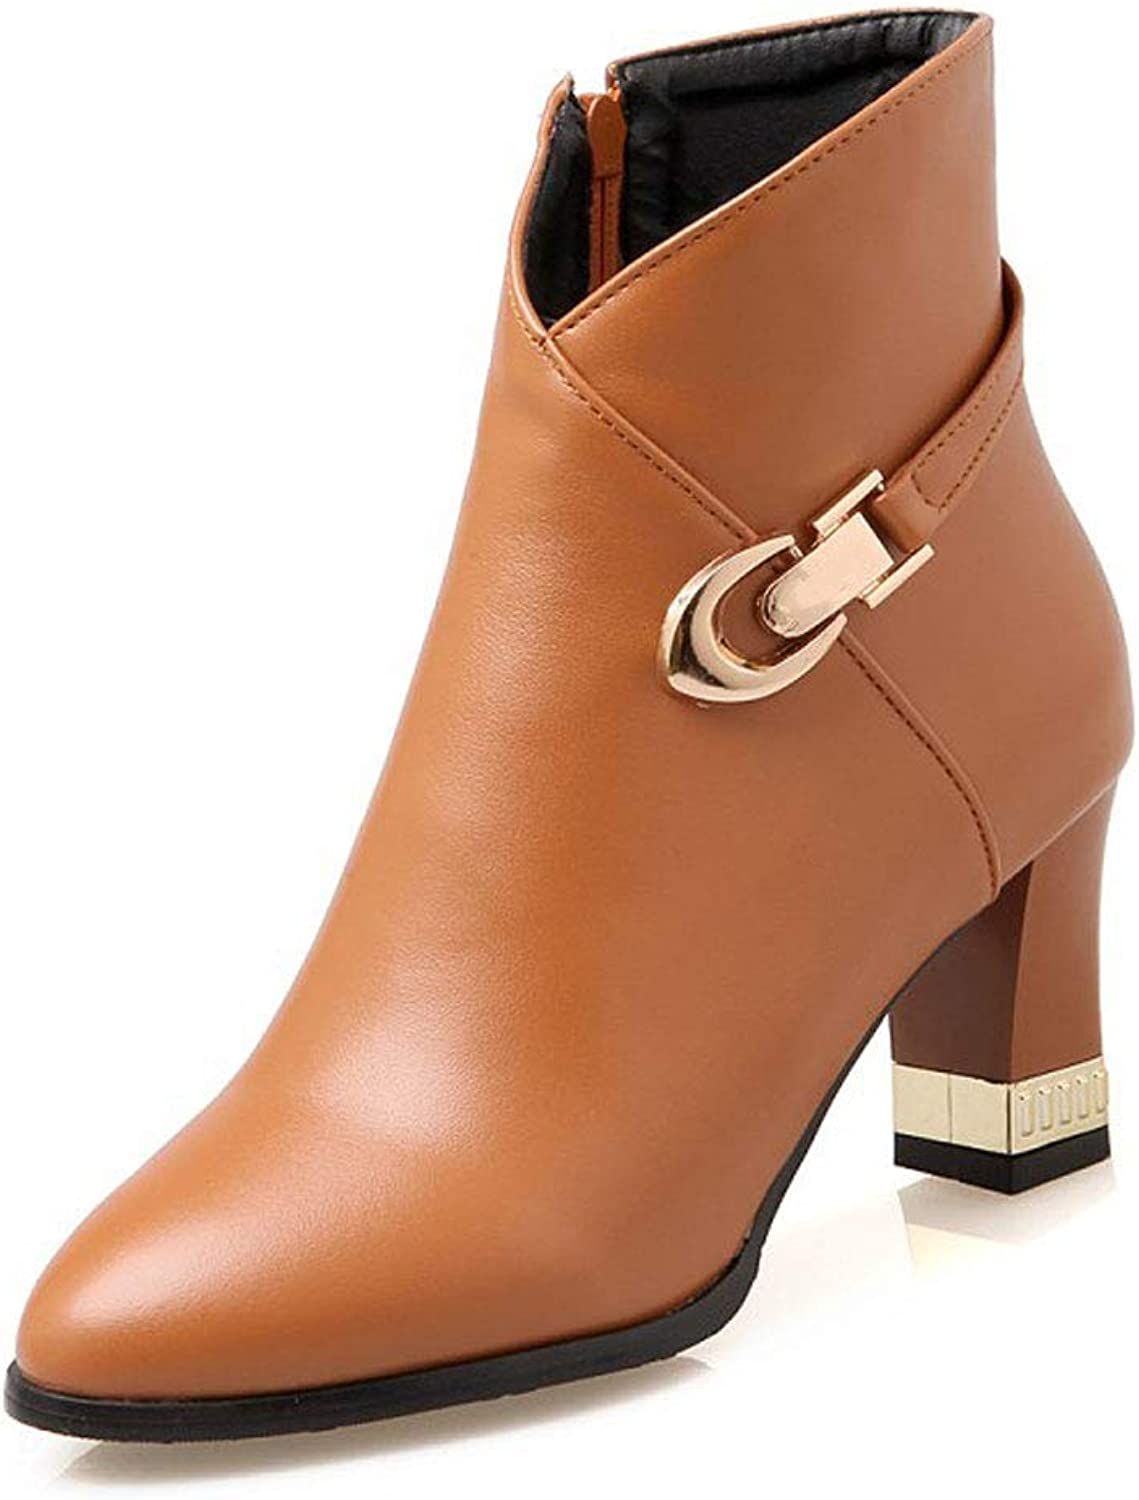 Fashion Ankle Boots, High Heels Thick with Large Size Low Tube Martin Boots Pointed Side Zipper Short Boots Belt Buckle Waterproof Platform Ladies Slip PU shoes